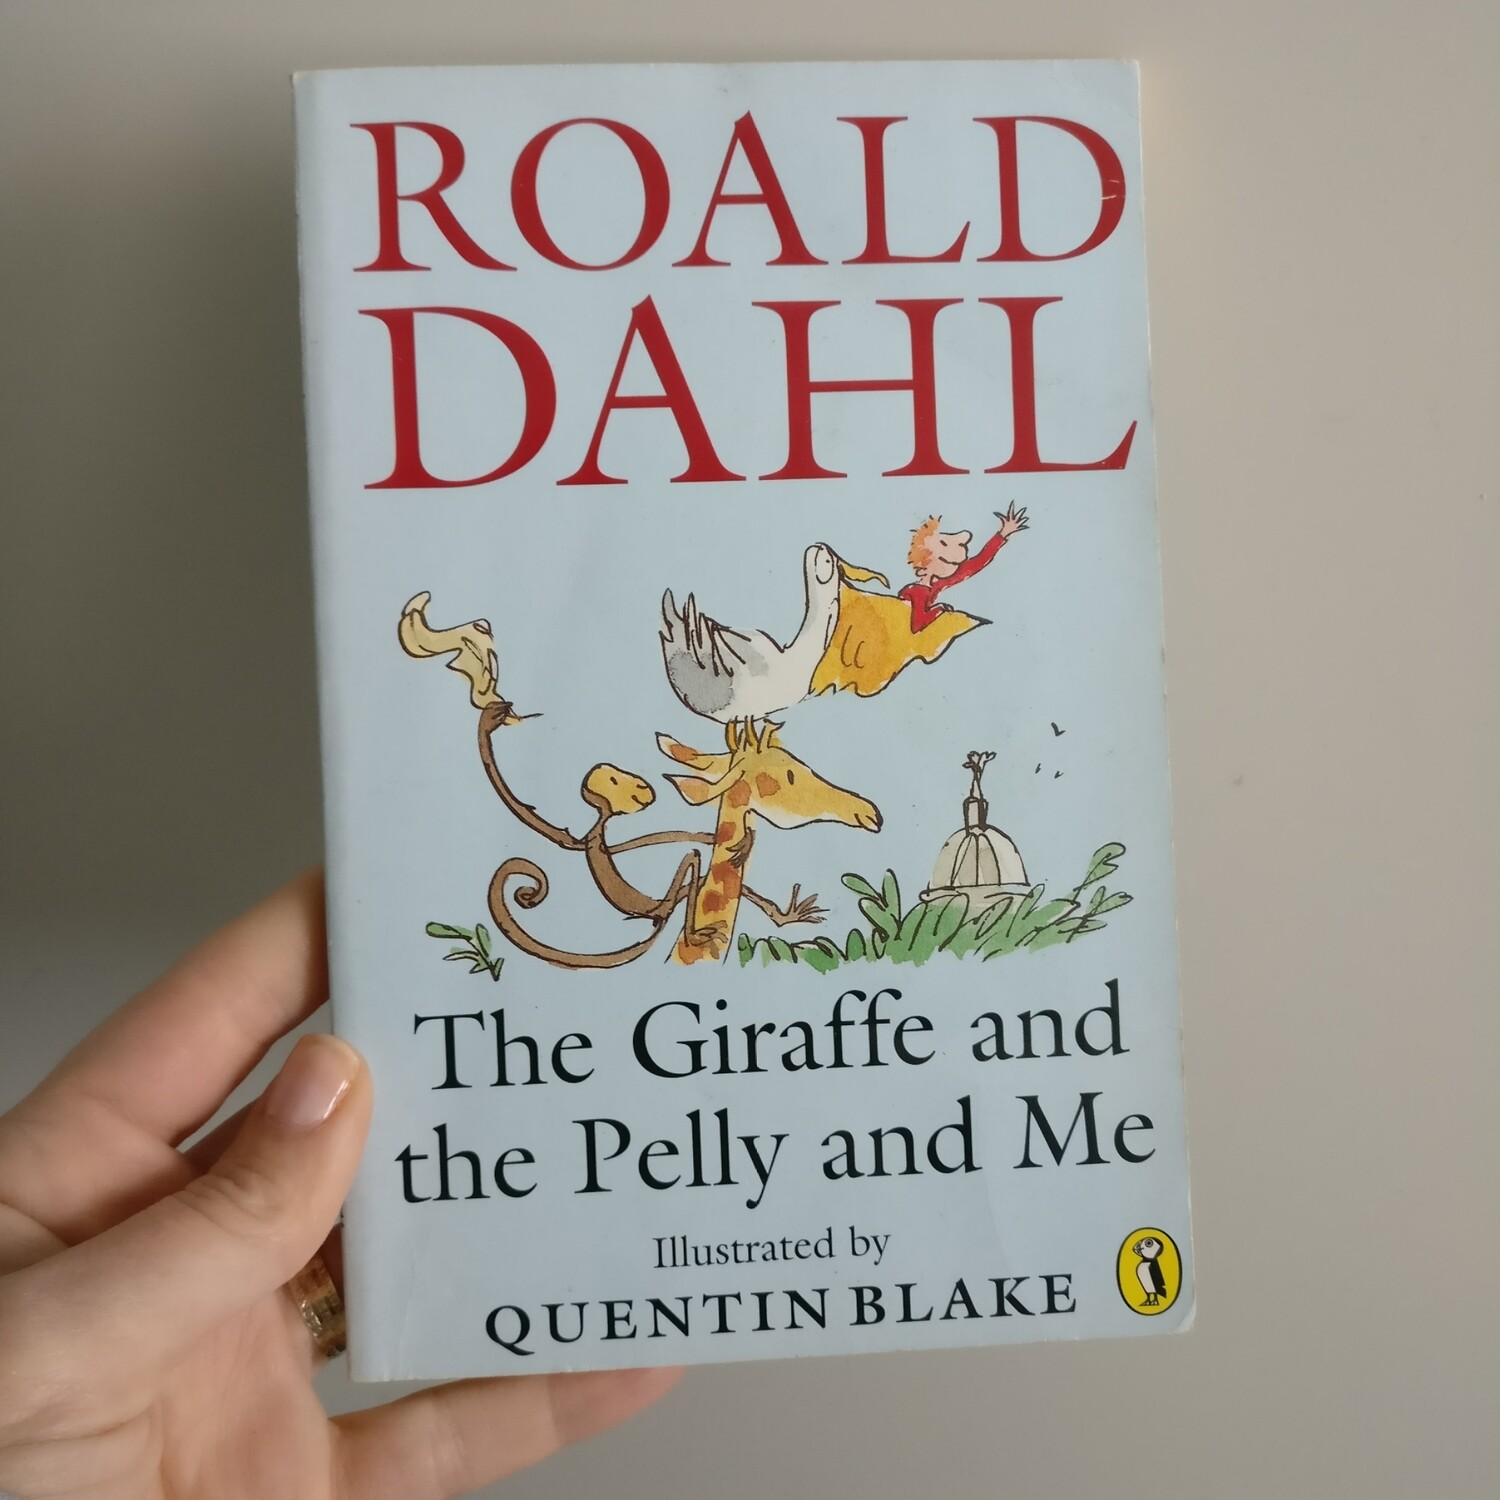 The Giraffe, Pelly and Me by Roald Dahl Notebook - made from a paperback book